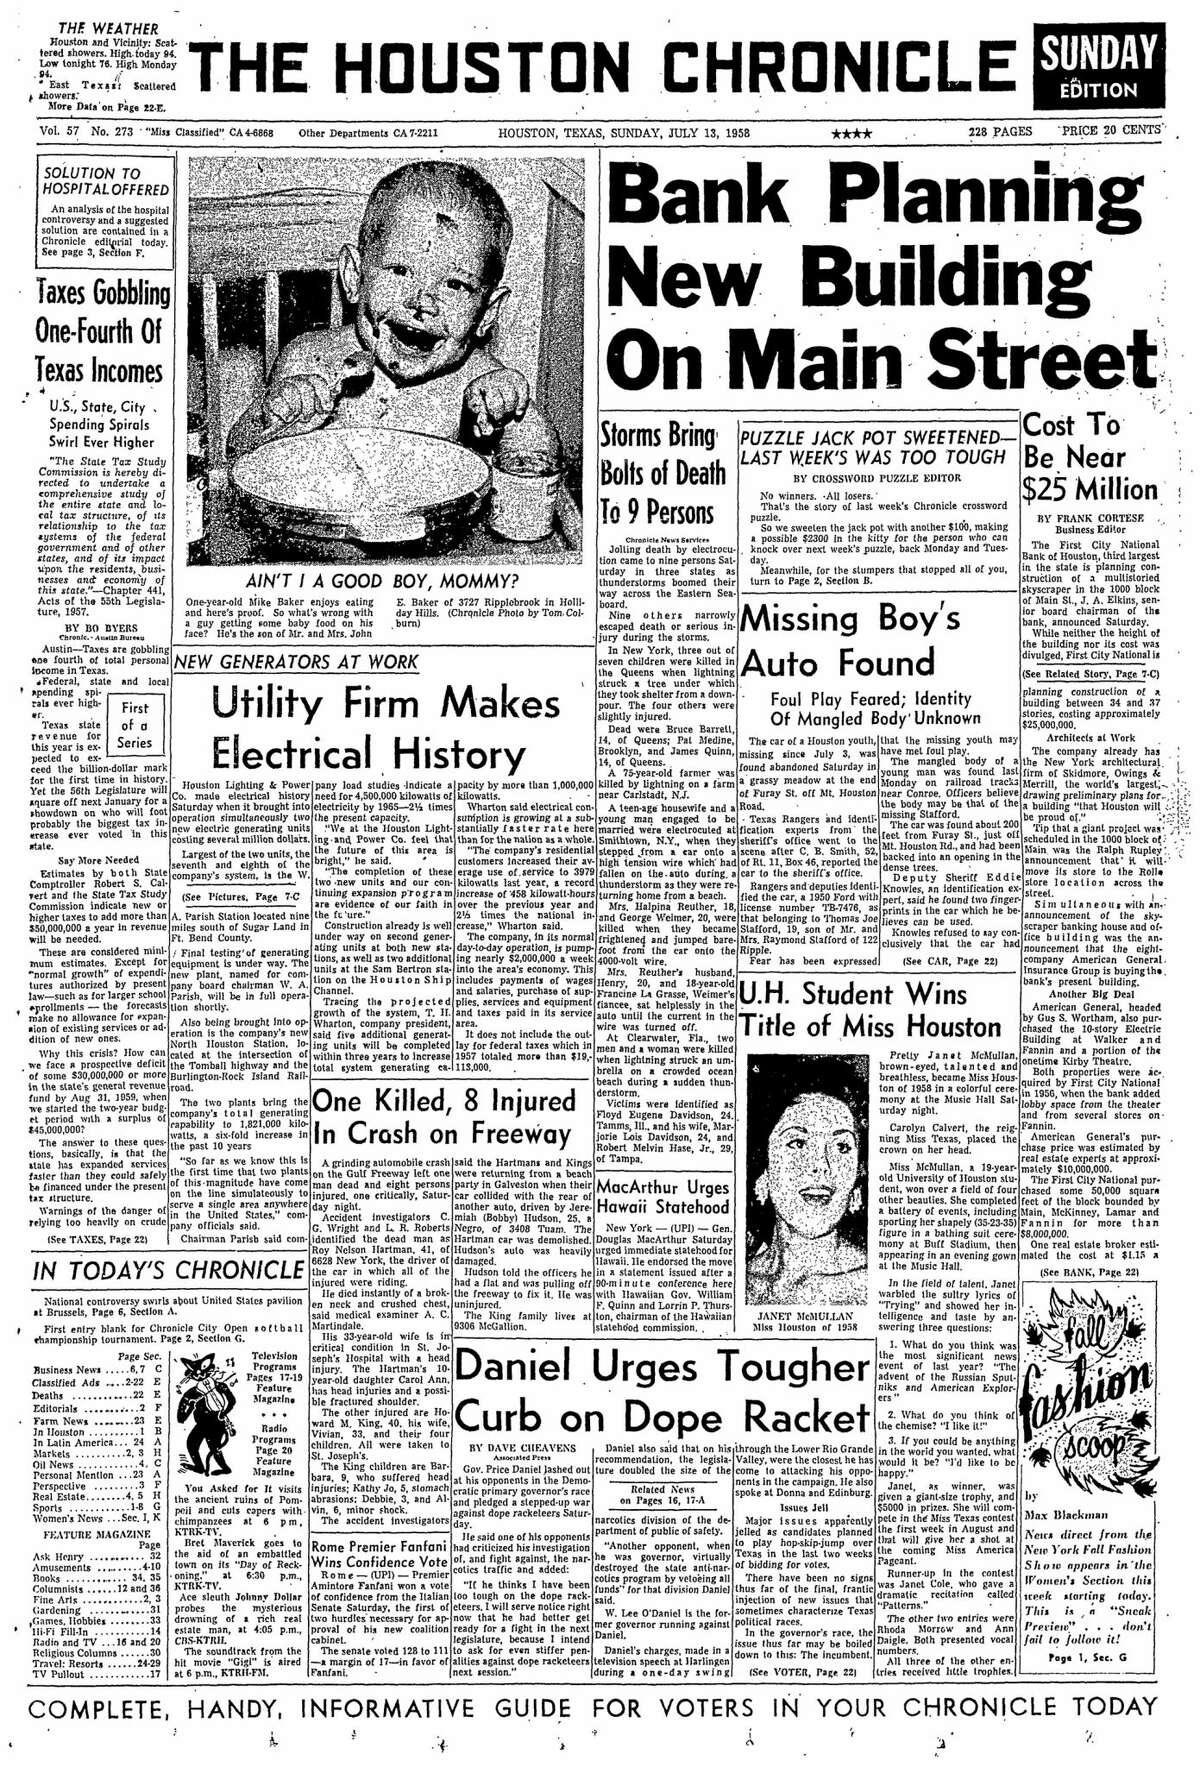 Houston Chronicle front page from July 13, 1958.